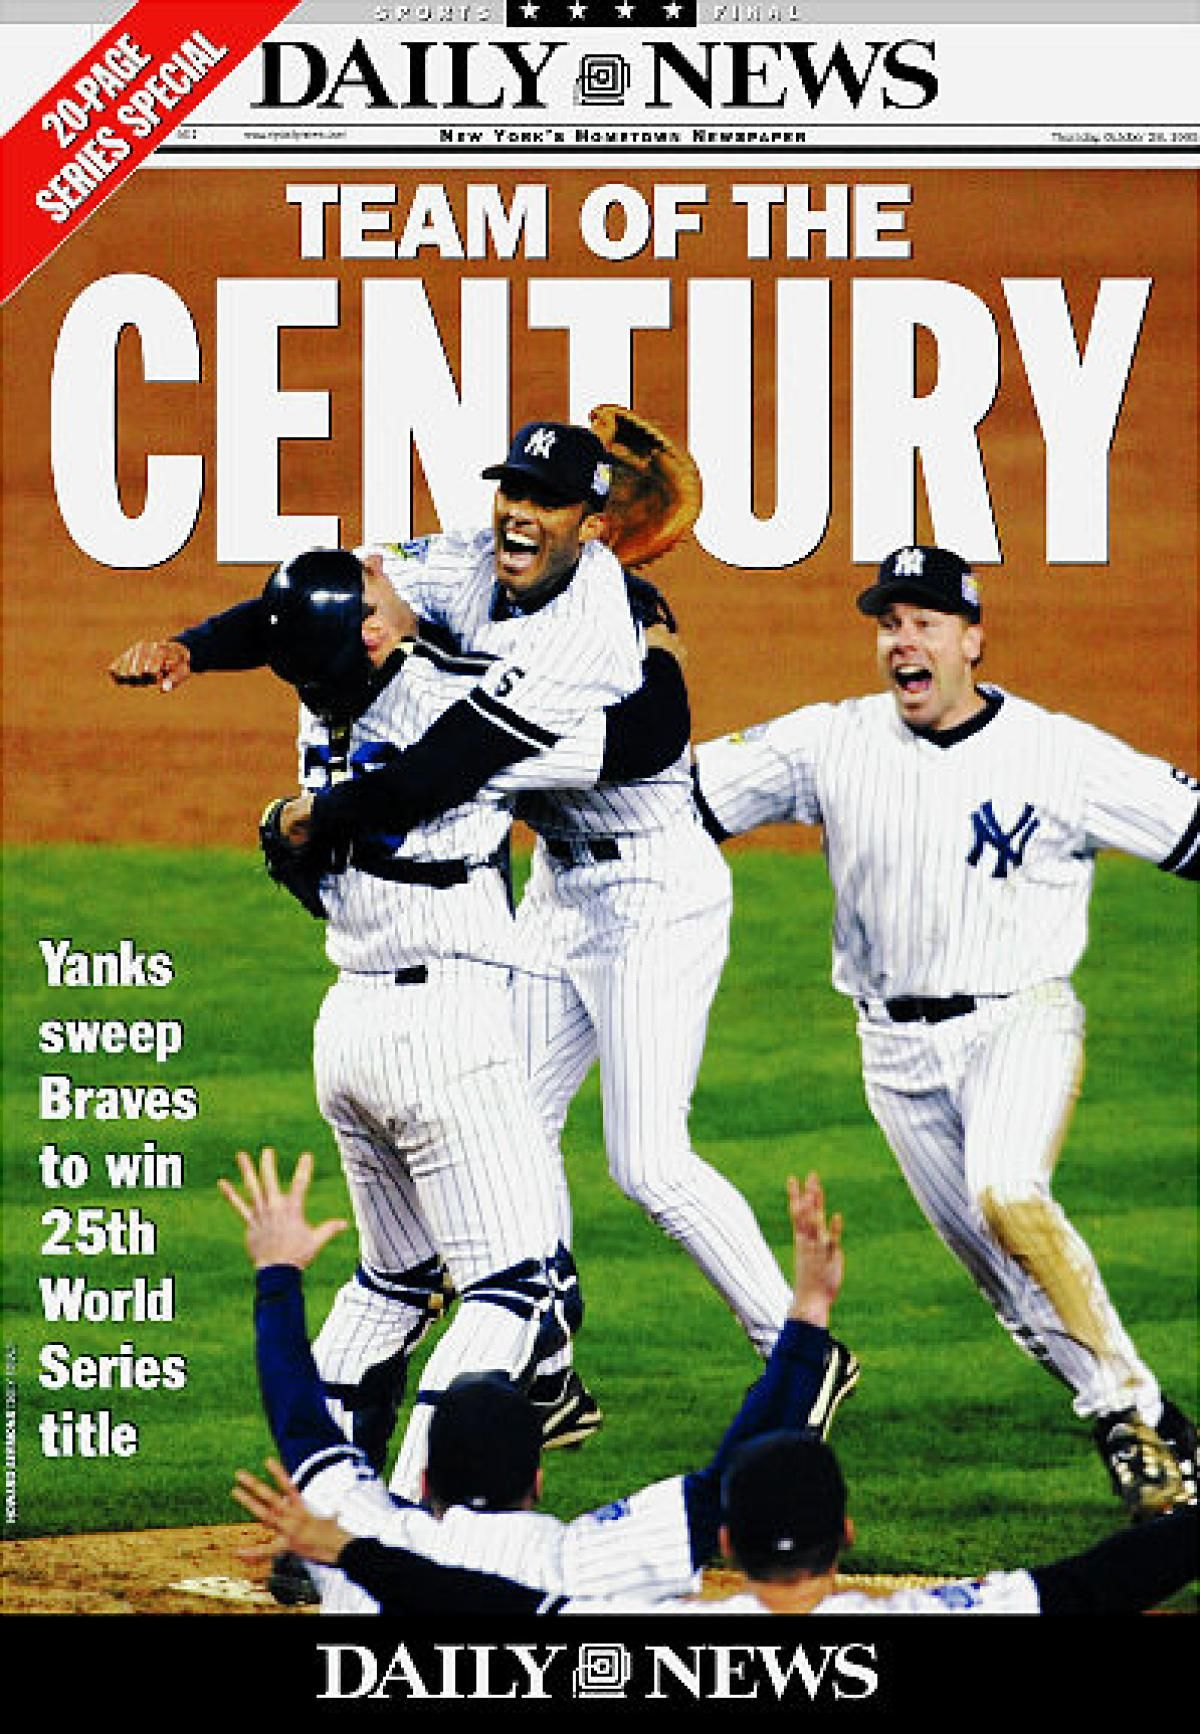 db6a5241270 1999 World SeriesYankees over Braves